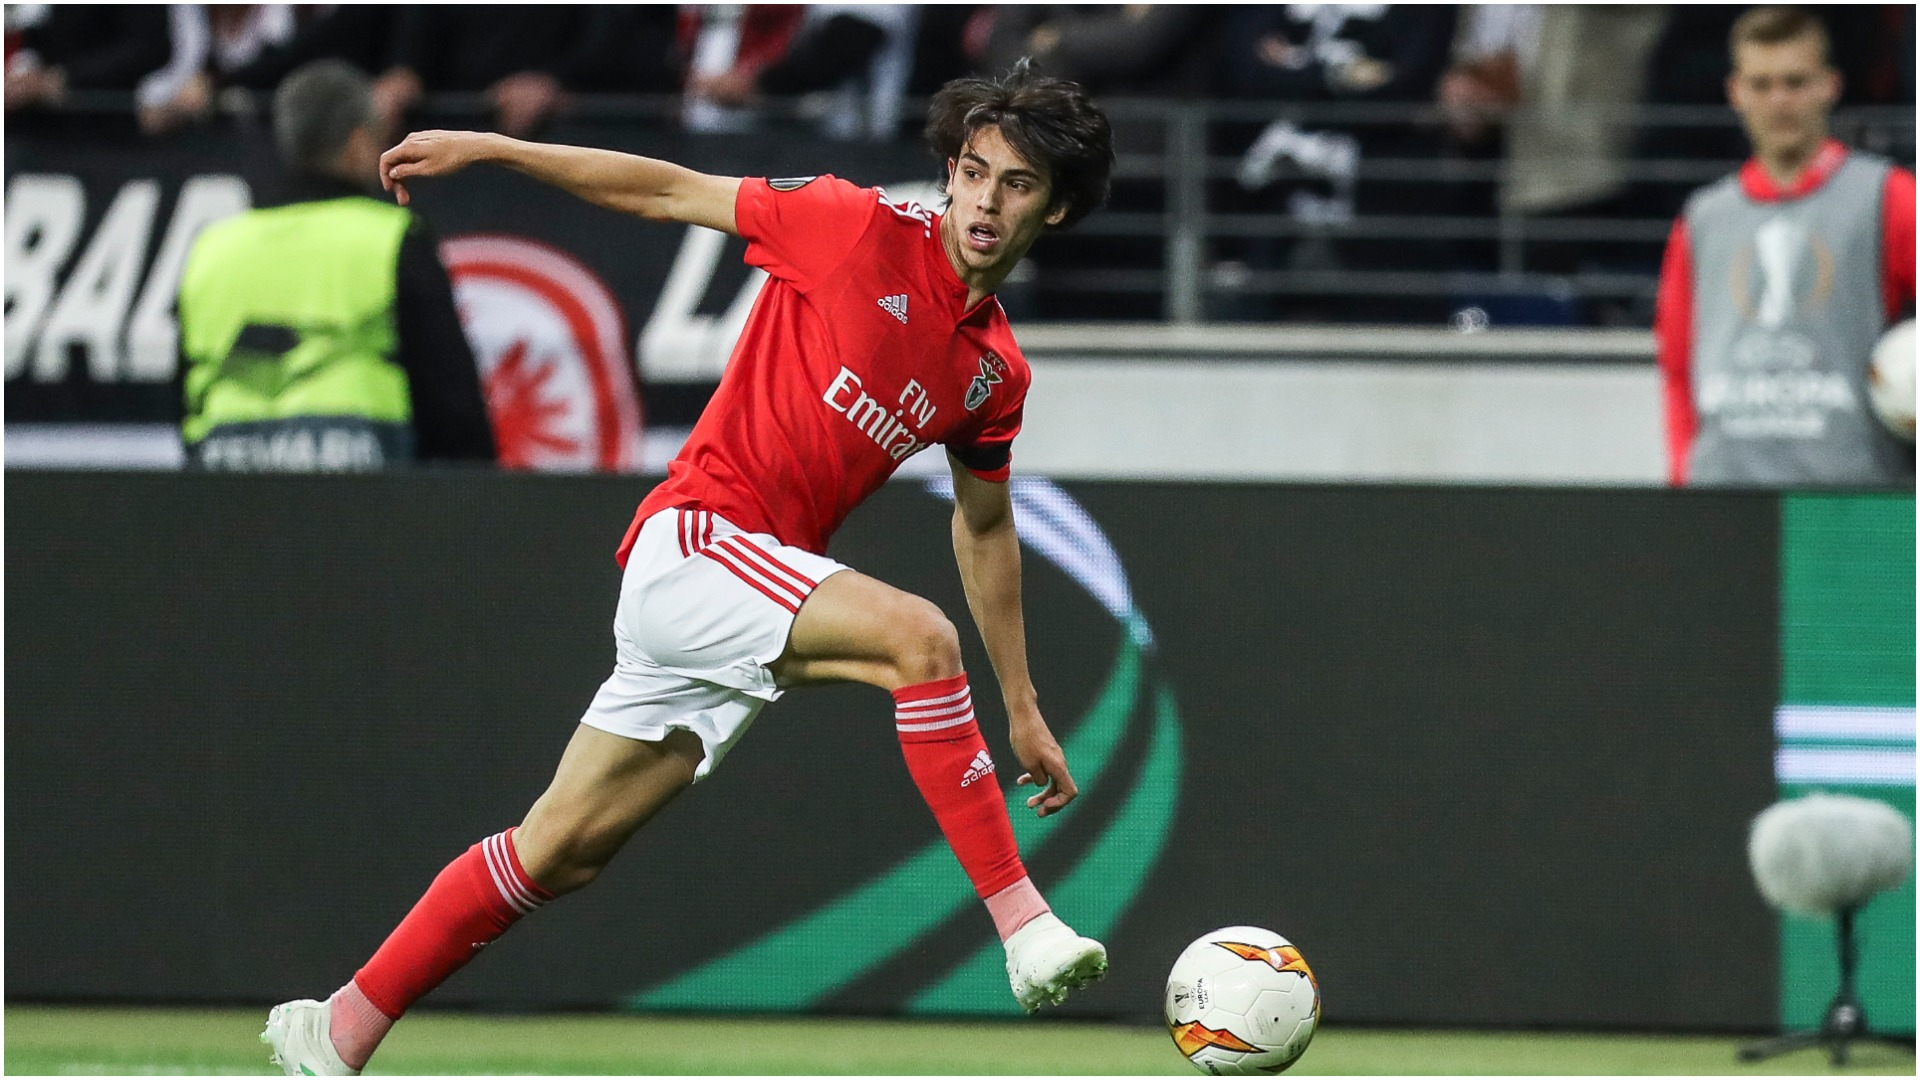 Benfica want full €120m release clause for Joao Felix